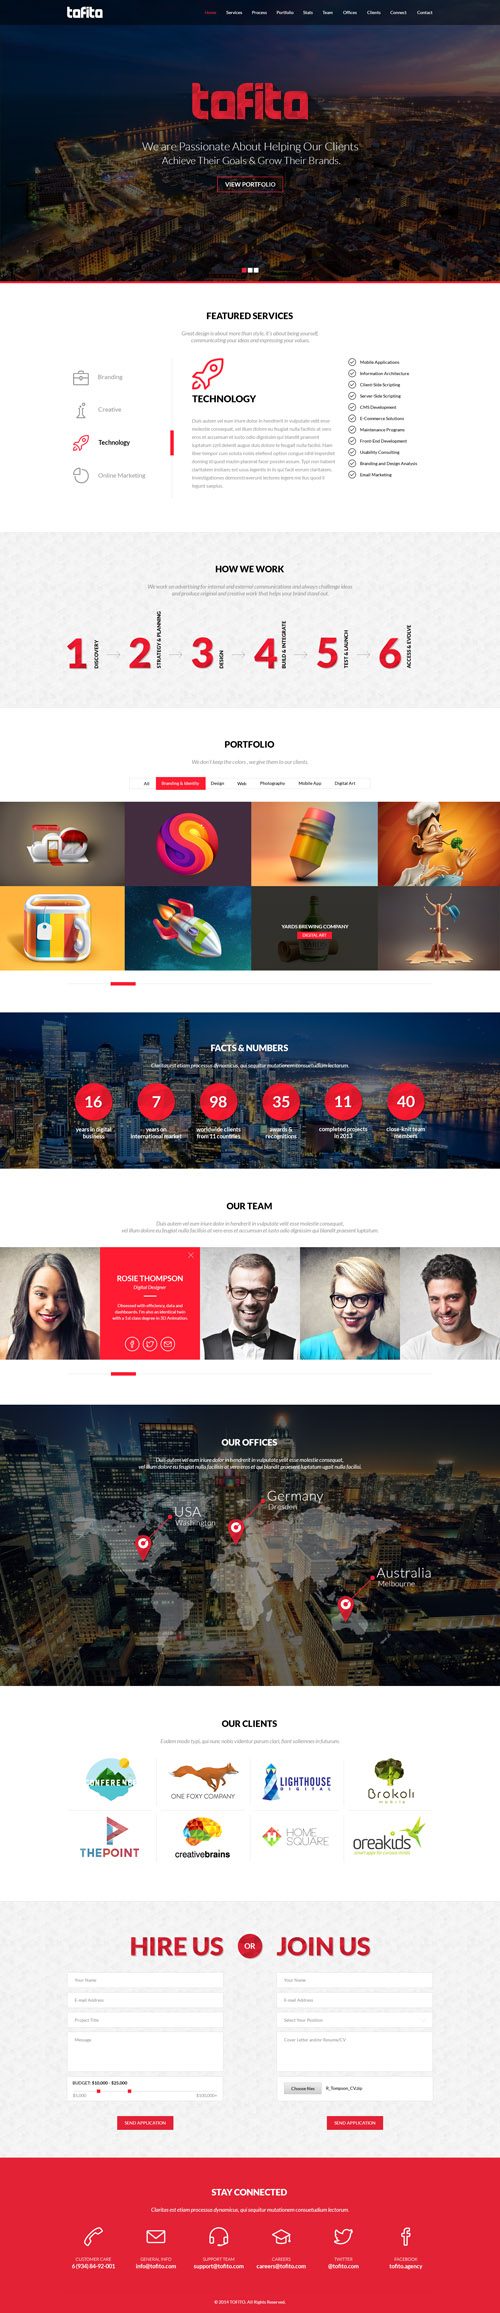 One page business psd templates design graphic design junction tofito one page business portfolio psd template cheaphphosting Image collections